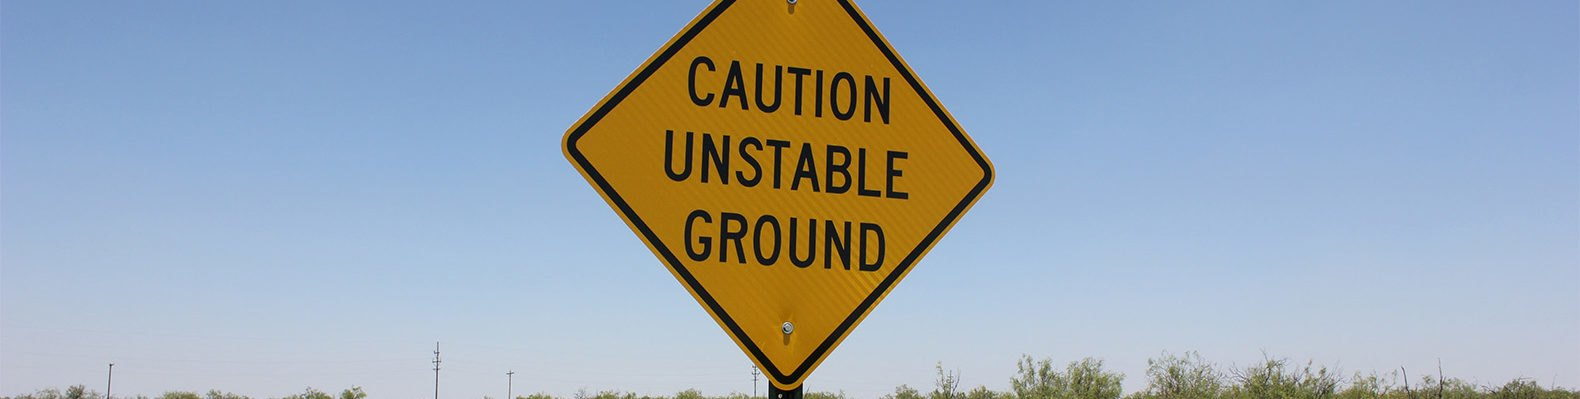 Texas, Wink, Wink sinkholes, sign, caution, unstable ground, caution unstable ground